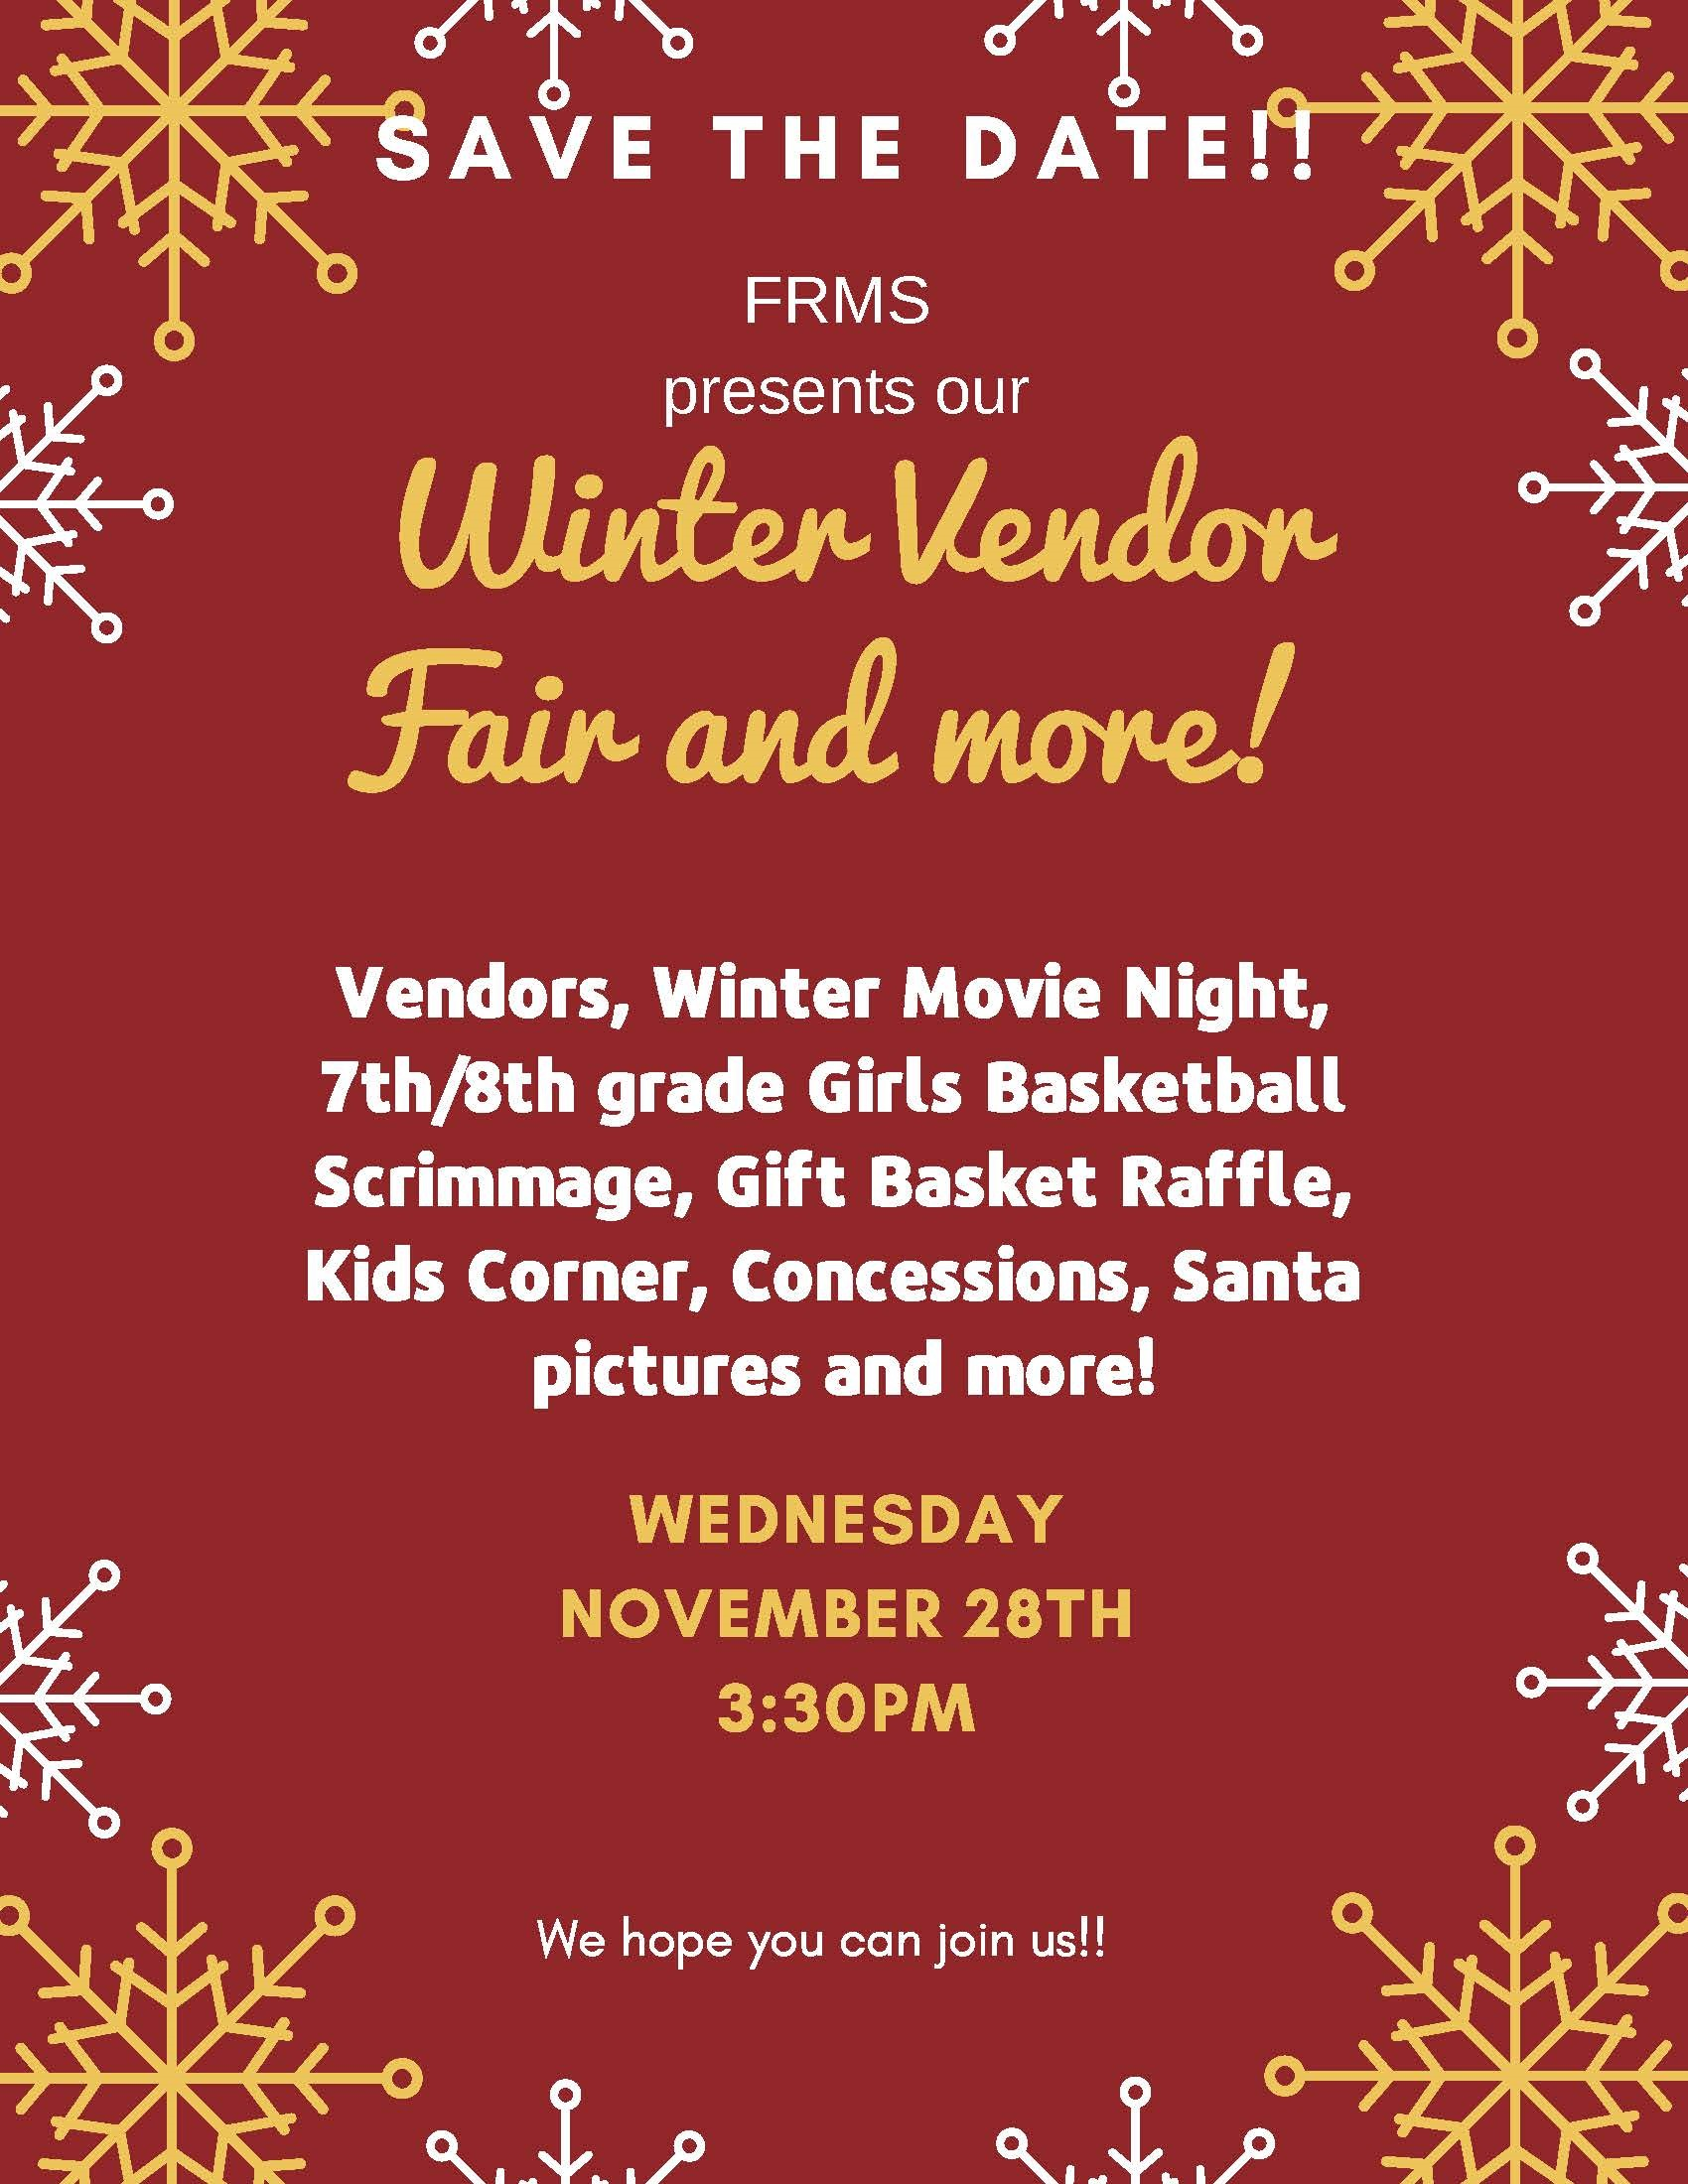 Flyer for the winter vendor fair. All information is above.